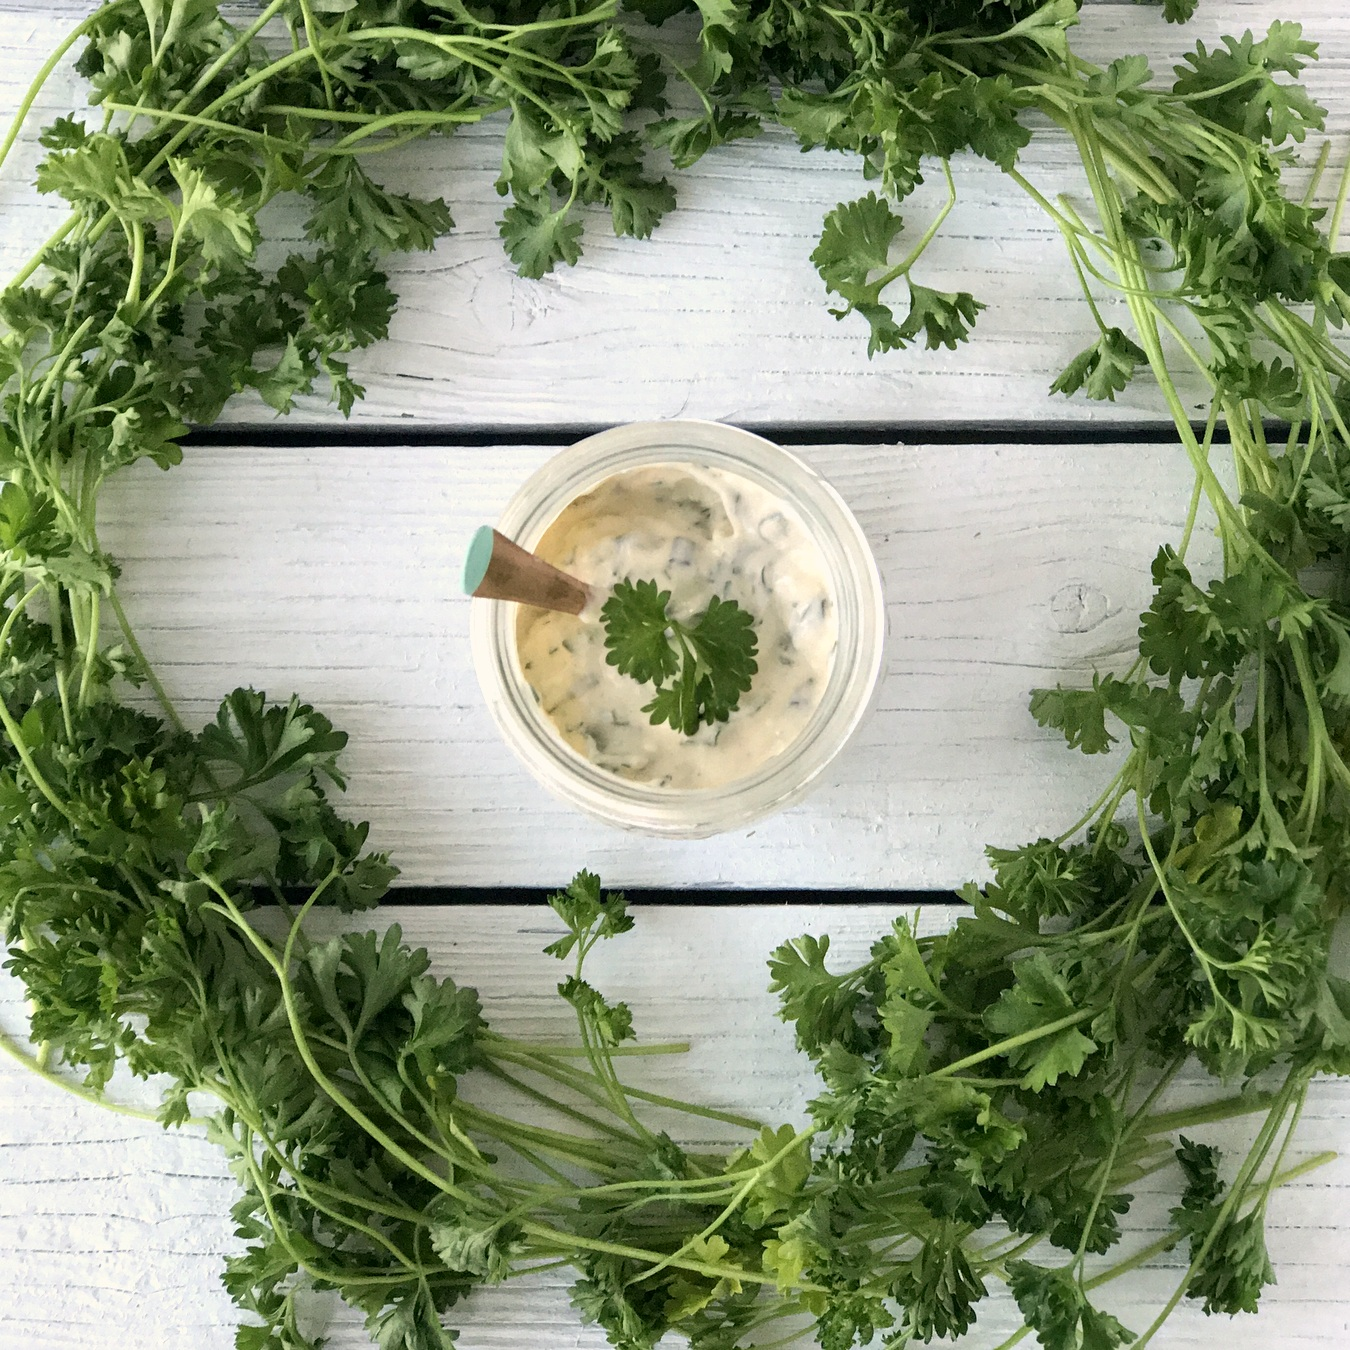 homemade paleo ranch recipe with fresh herbs- once you try this, all other ranches will be ruined forever